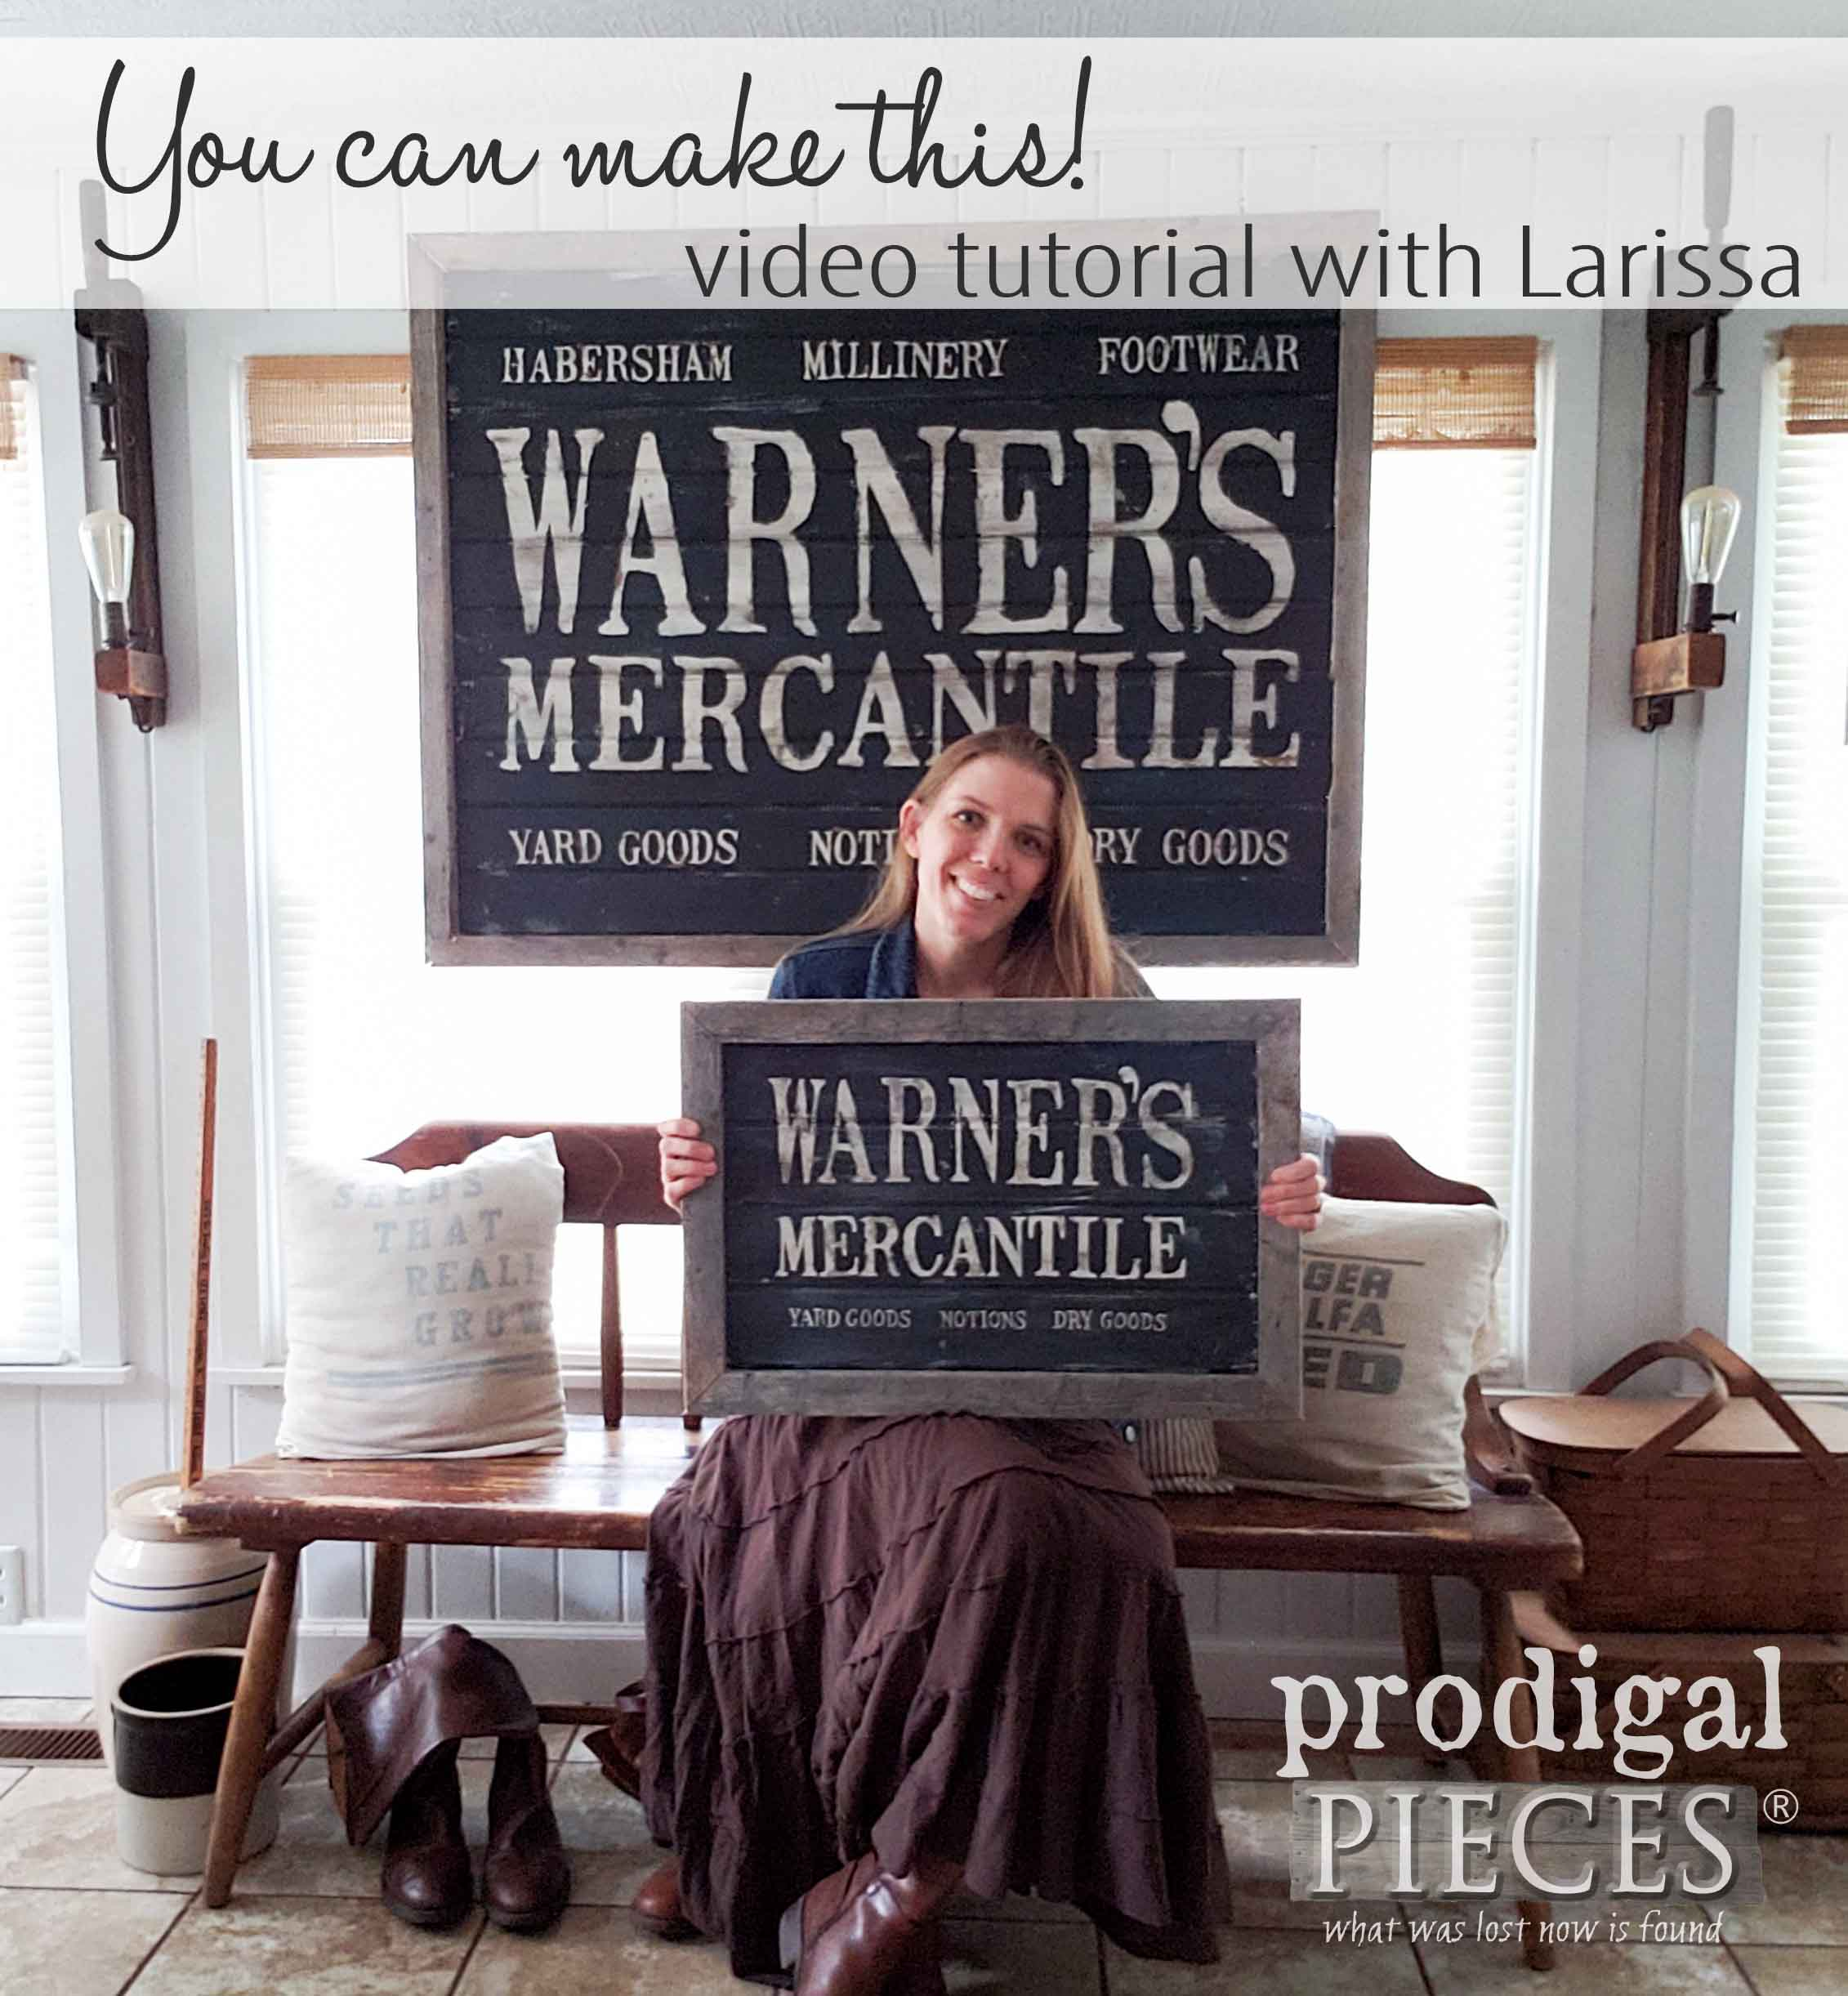 You can create this DIY Antique Store sign with the help of Larissa of Prodigal Pieces and her step-by-step video tutorial at prodigalpieces.com #prodigalpieces #diy #handmade #home #homedecor